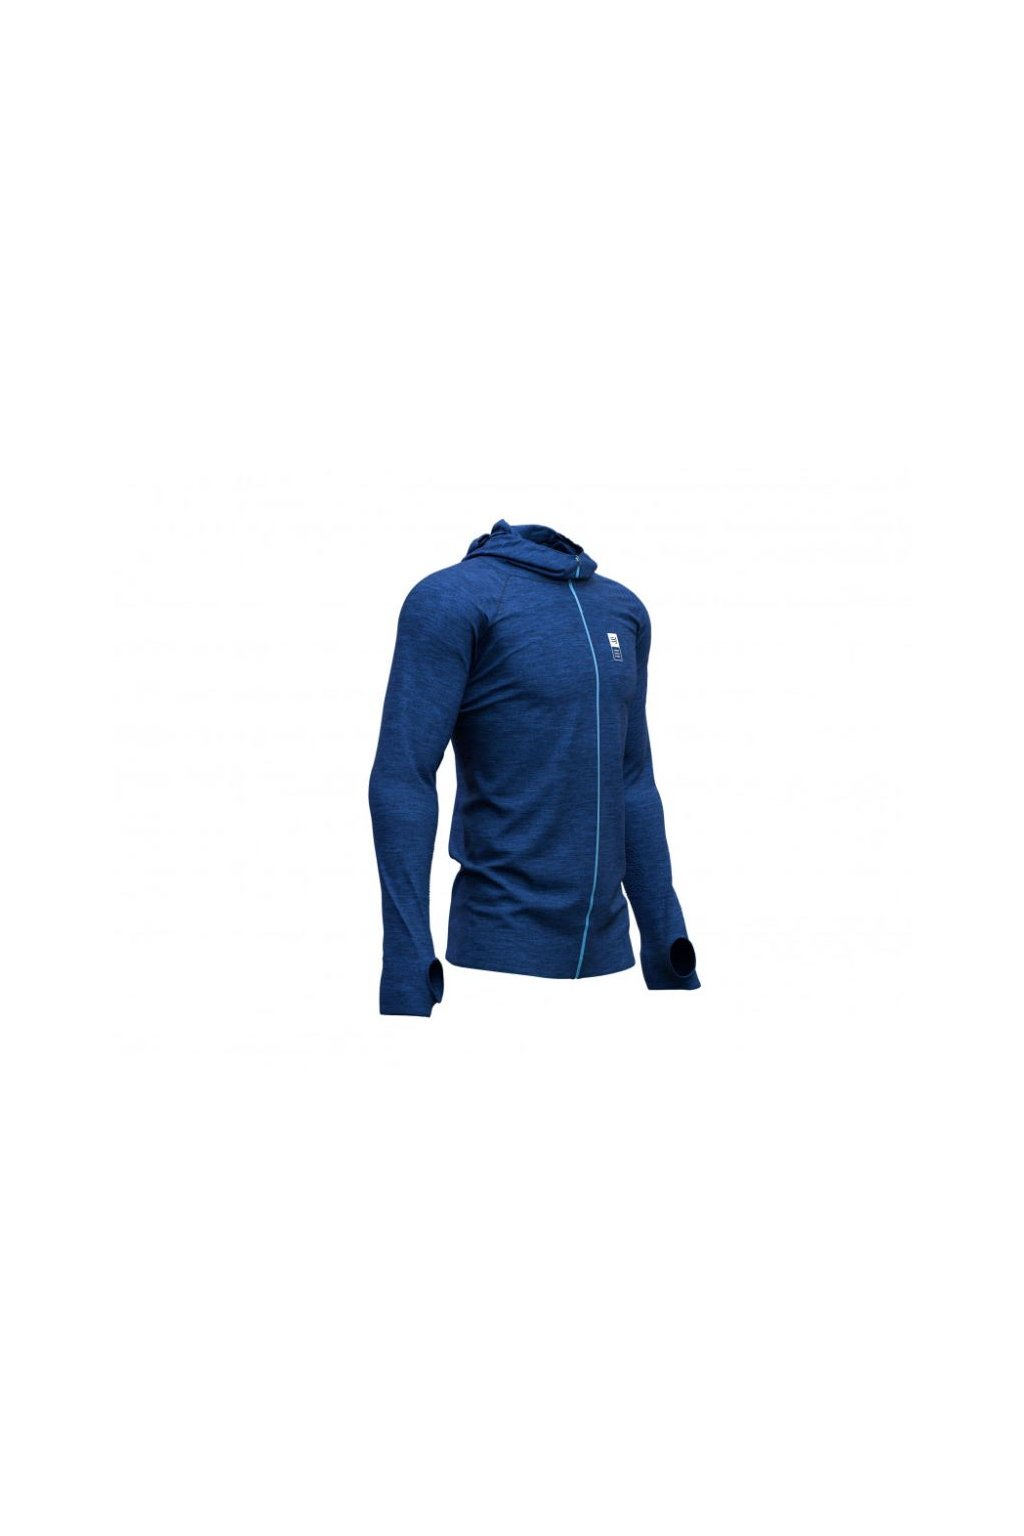 3d thermo seamless hoodie zip mont blanc 2019